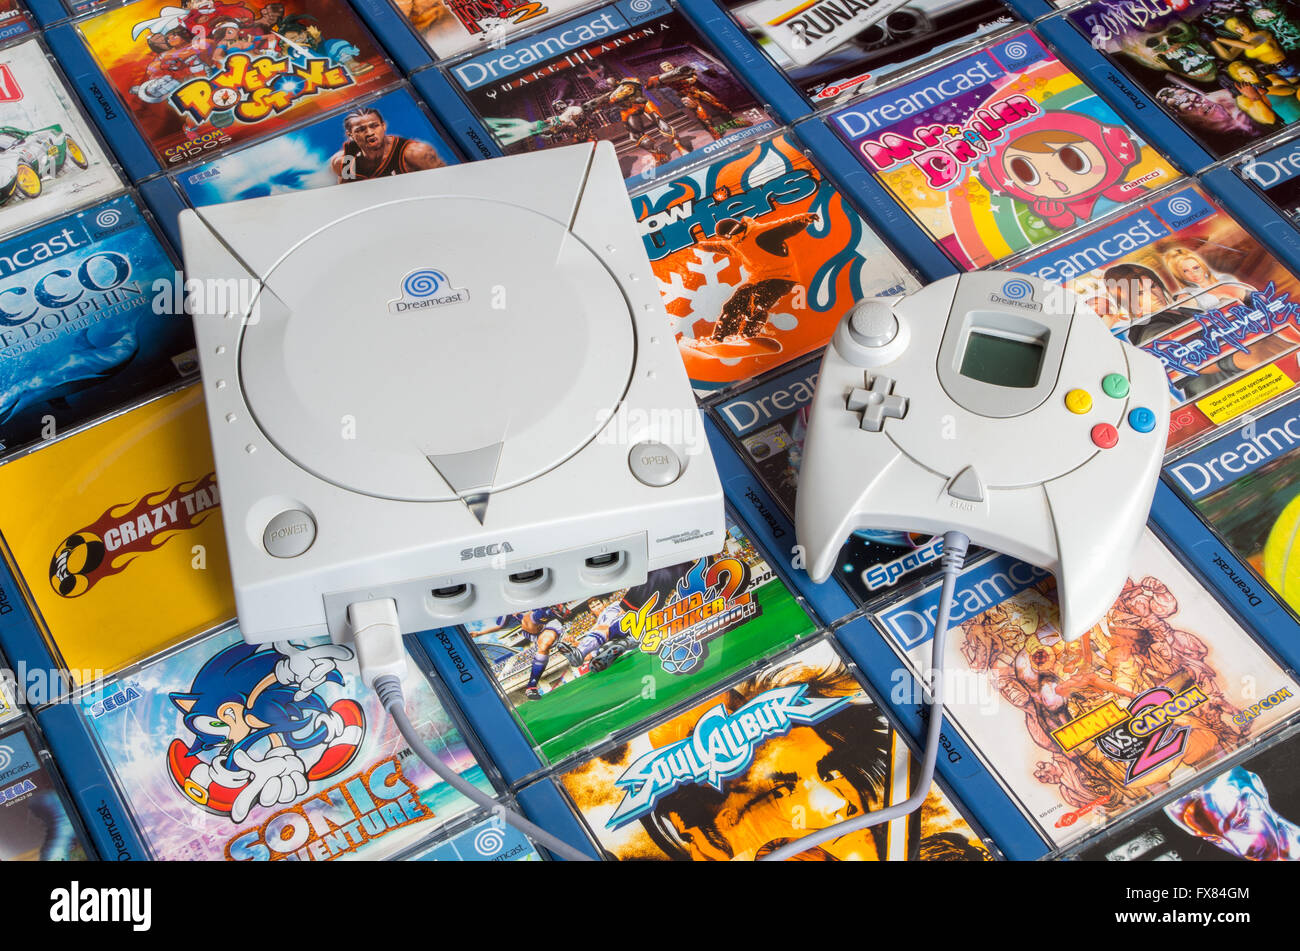 A European Sega Dreamcast console and hand controller are shown on a bed of PAL region games including Sonic Adventure. - Stock Image